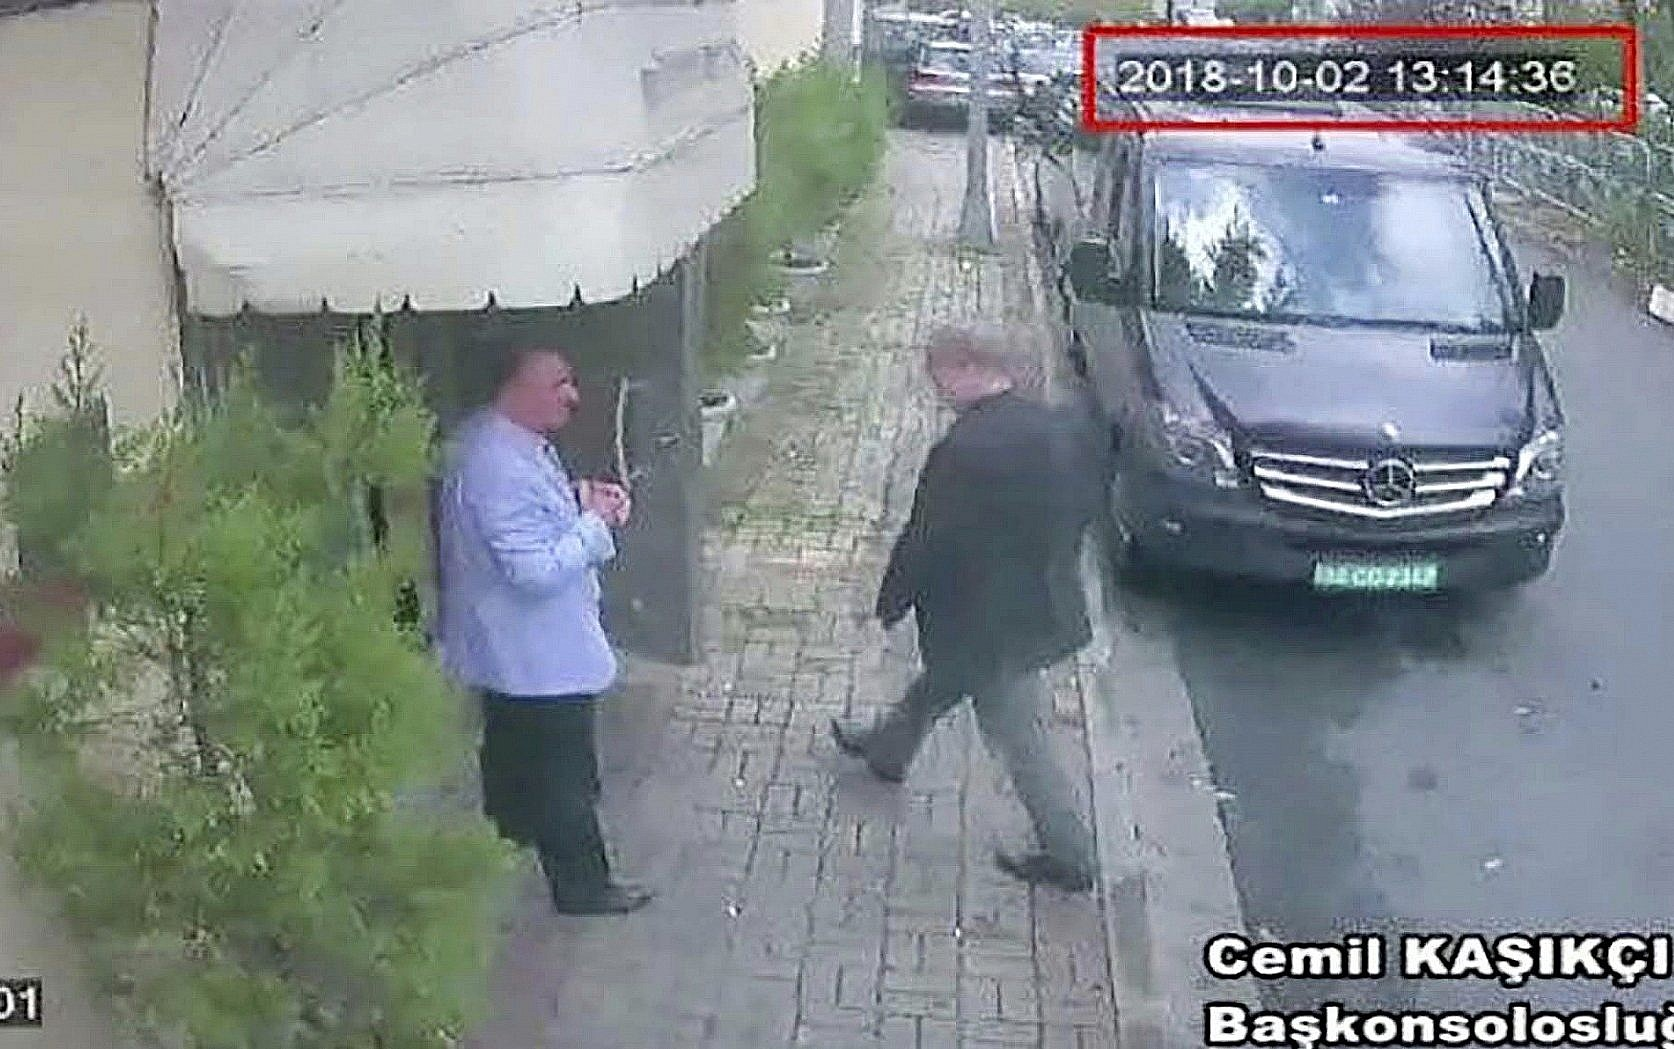 Turkish Official: Saudis Used Bone Saw to Dismember Body of Jamal Khashoggi